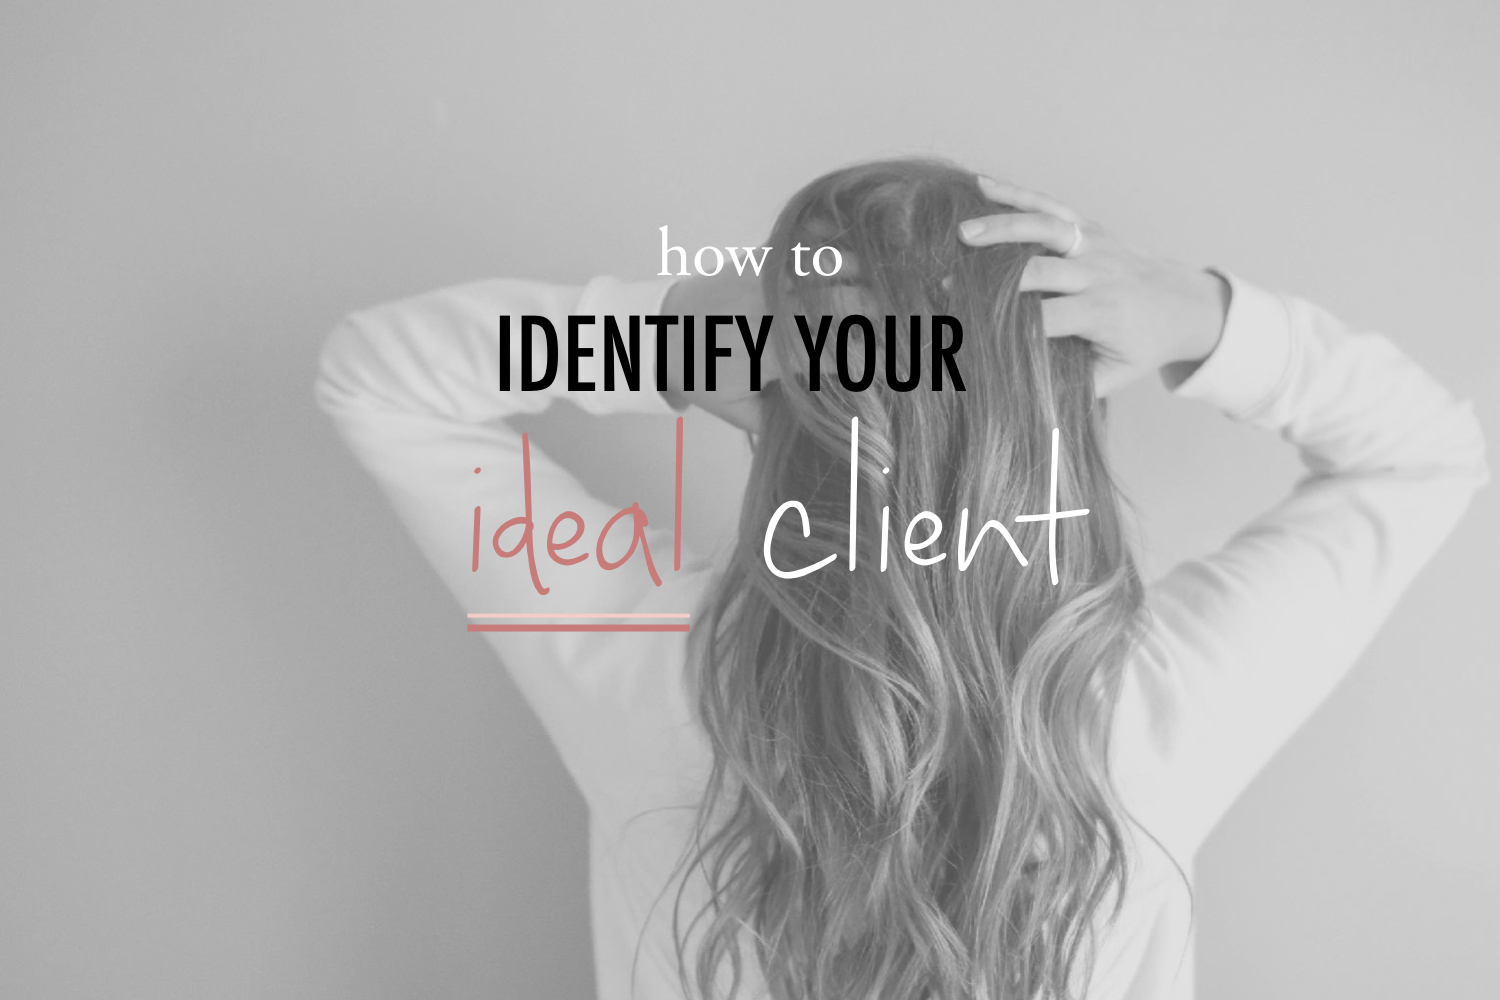 how to identify your ideal client - stacy kessler.001.jpeg